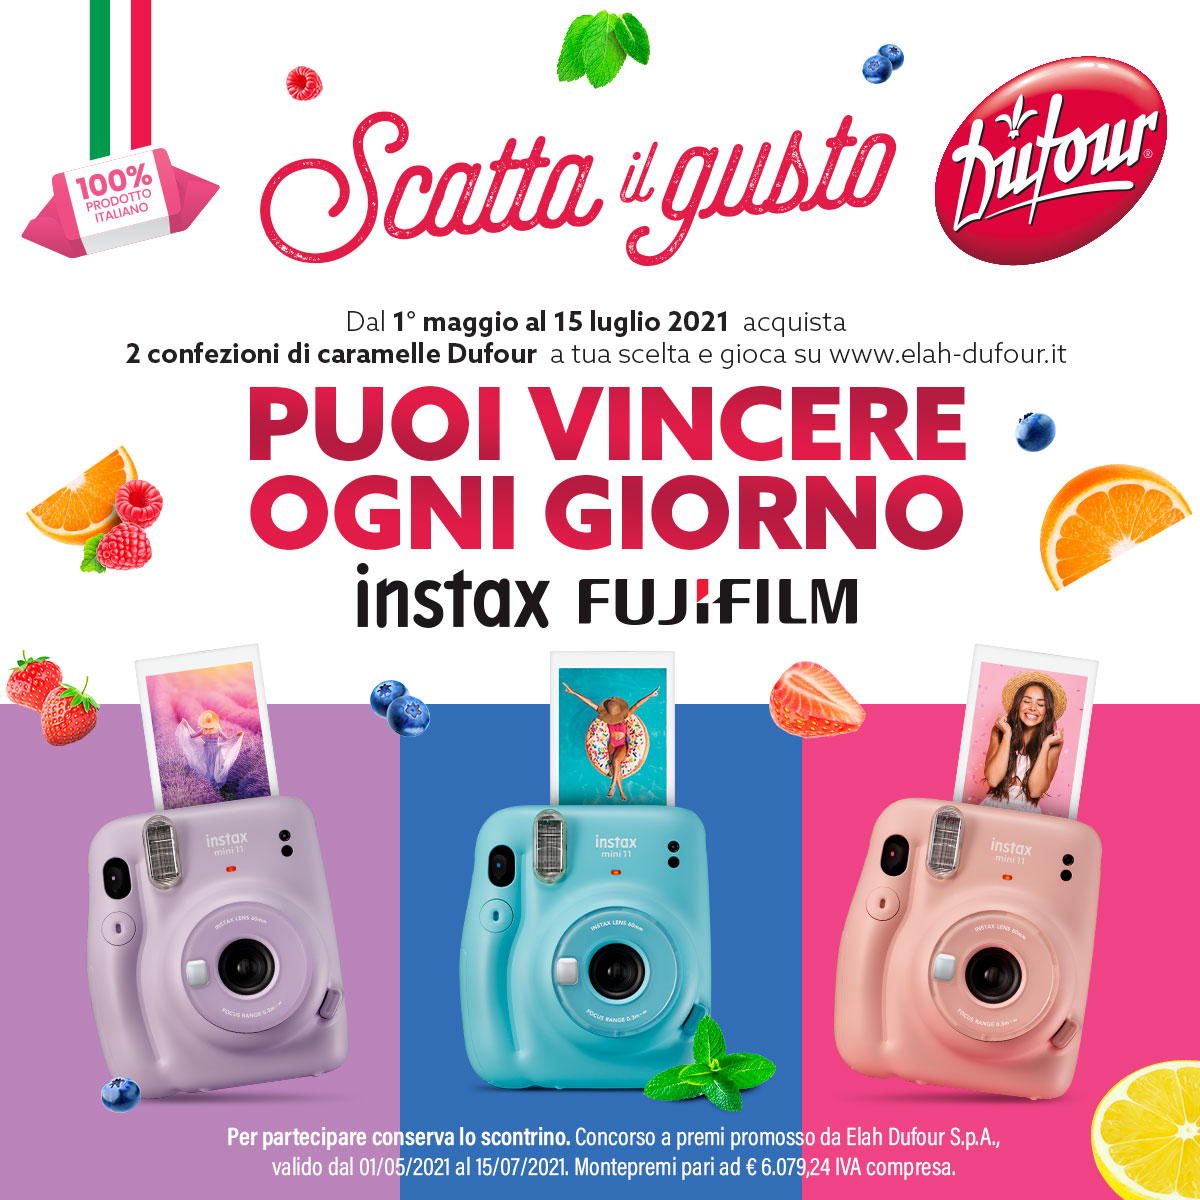 play-win-with-dufour-candies-every-day-instax-fujifilm-cameras-for-you